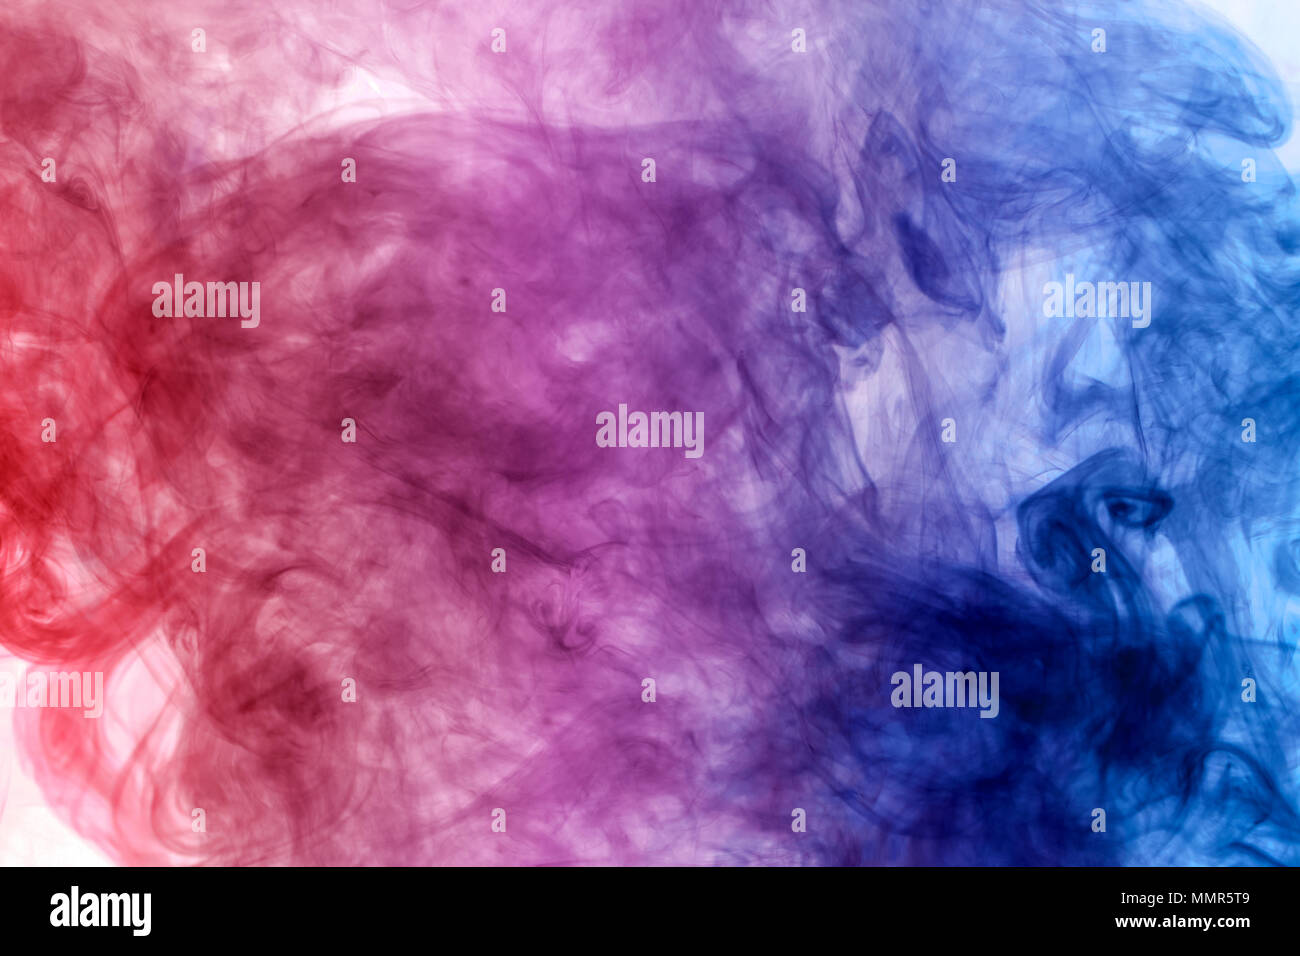 colorful red pink and blue smoke on a white isolated background background from the smoke of vape stock photo alamy https www alamy com colorful red pink and blue smoke on a white isolated background background from the smoke of vape image184906297 html